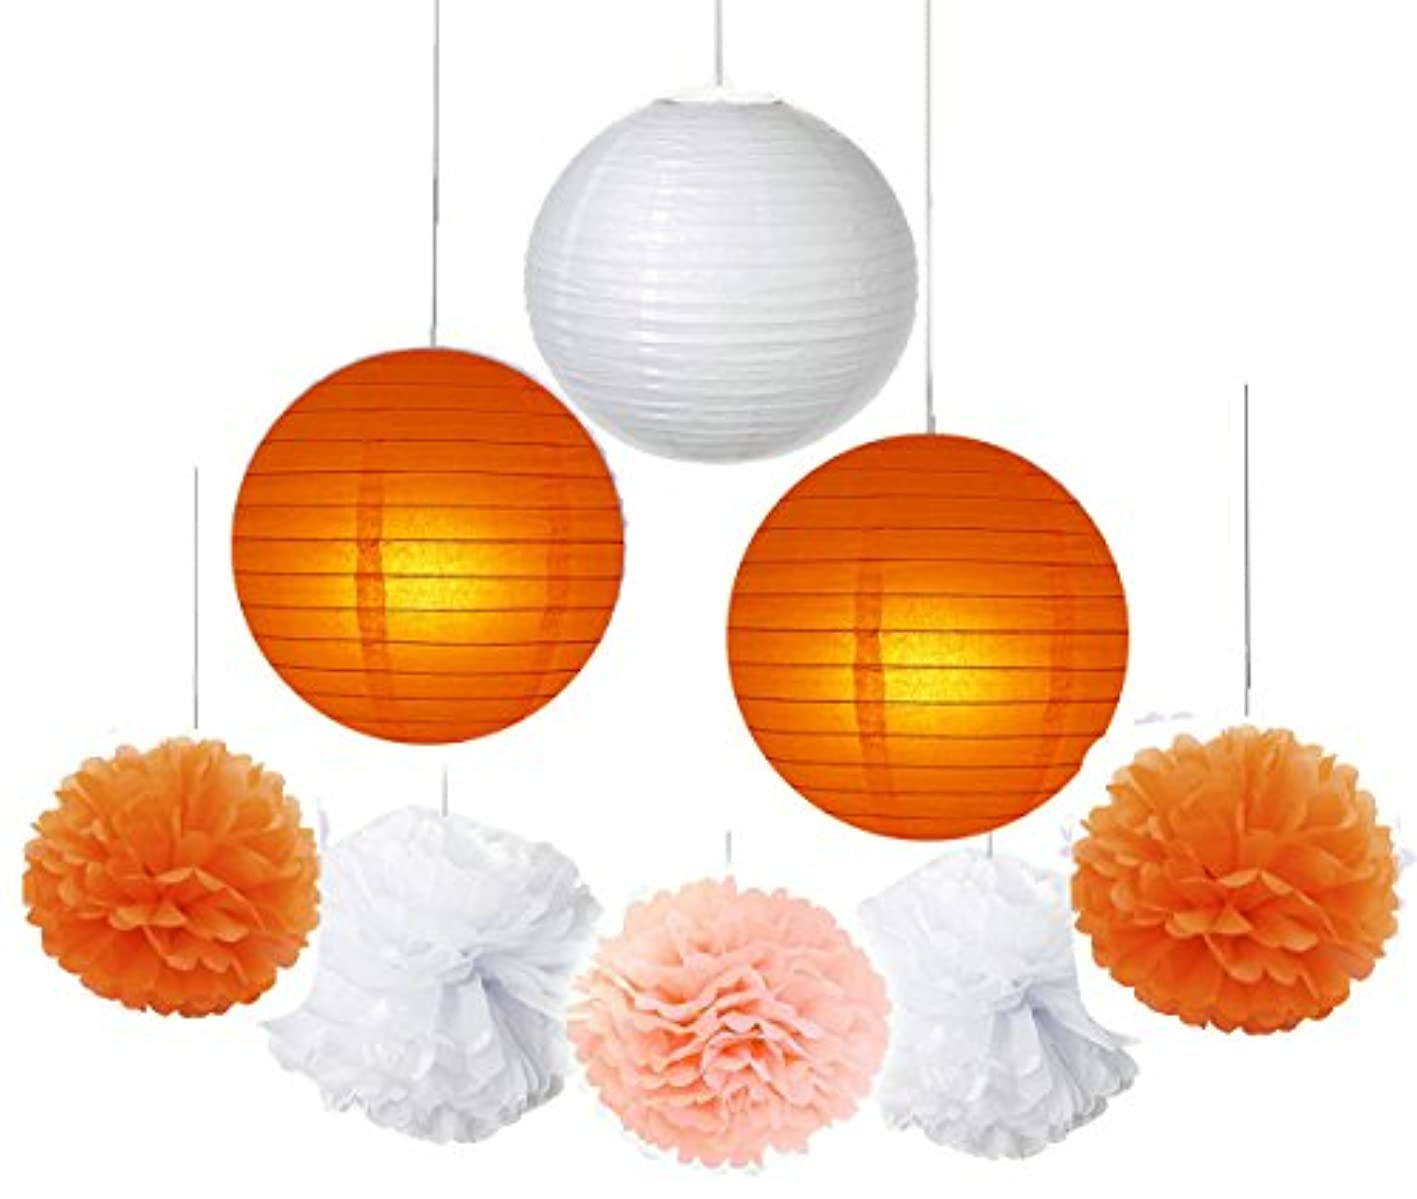 Fascola 16 pcs White Peach Orange 10inch 8inch Tissue Paper Pom Pom Paper Lanterns Mixed Package for Lavender Themed Party Bridal Shower Decor Baby Shower Decoration fbpjuubyide404